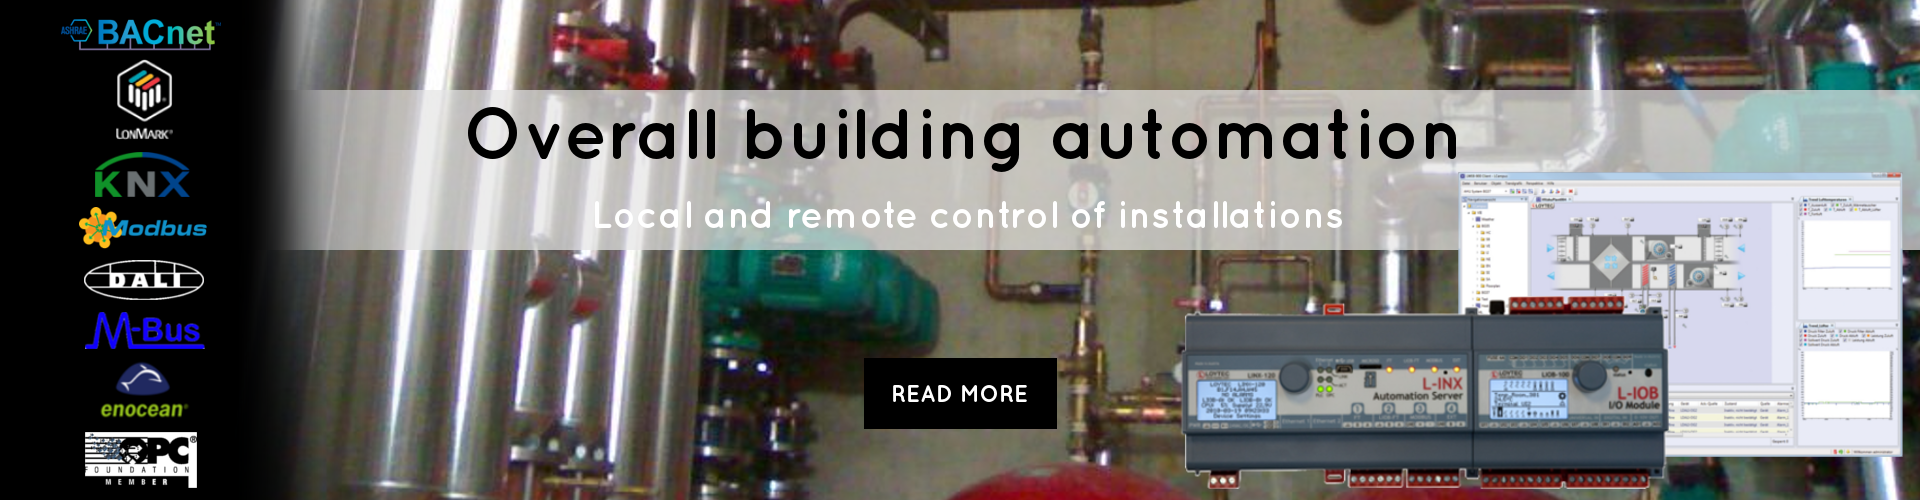 Overall building automation local and remote control of installations